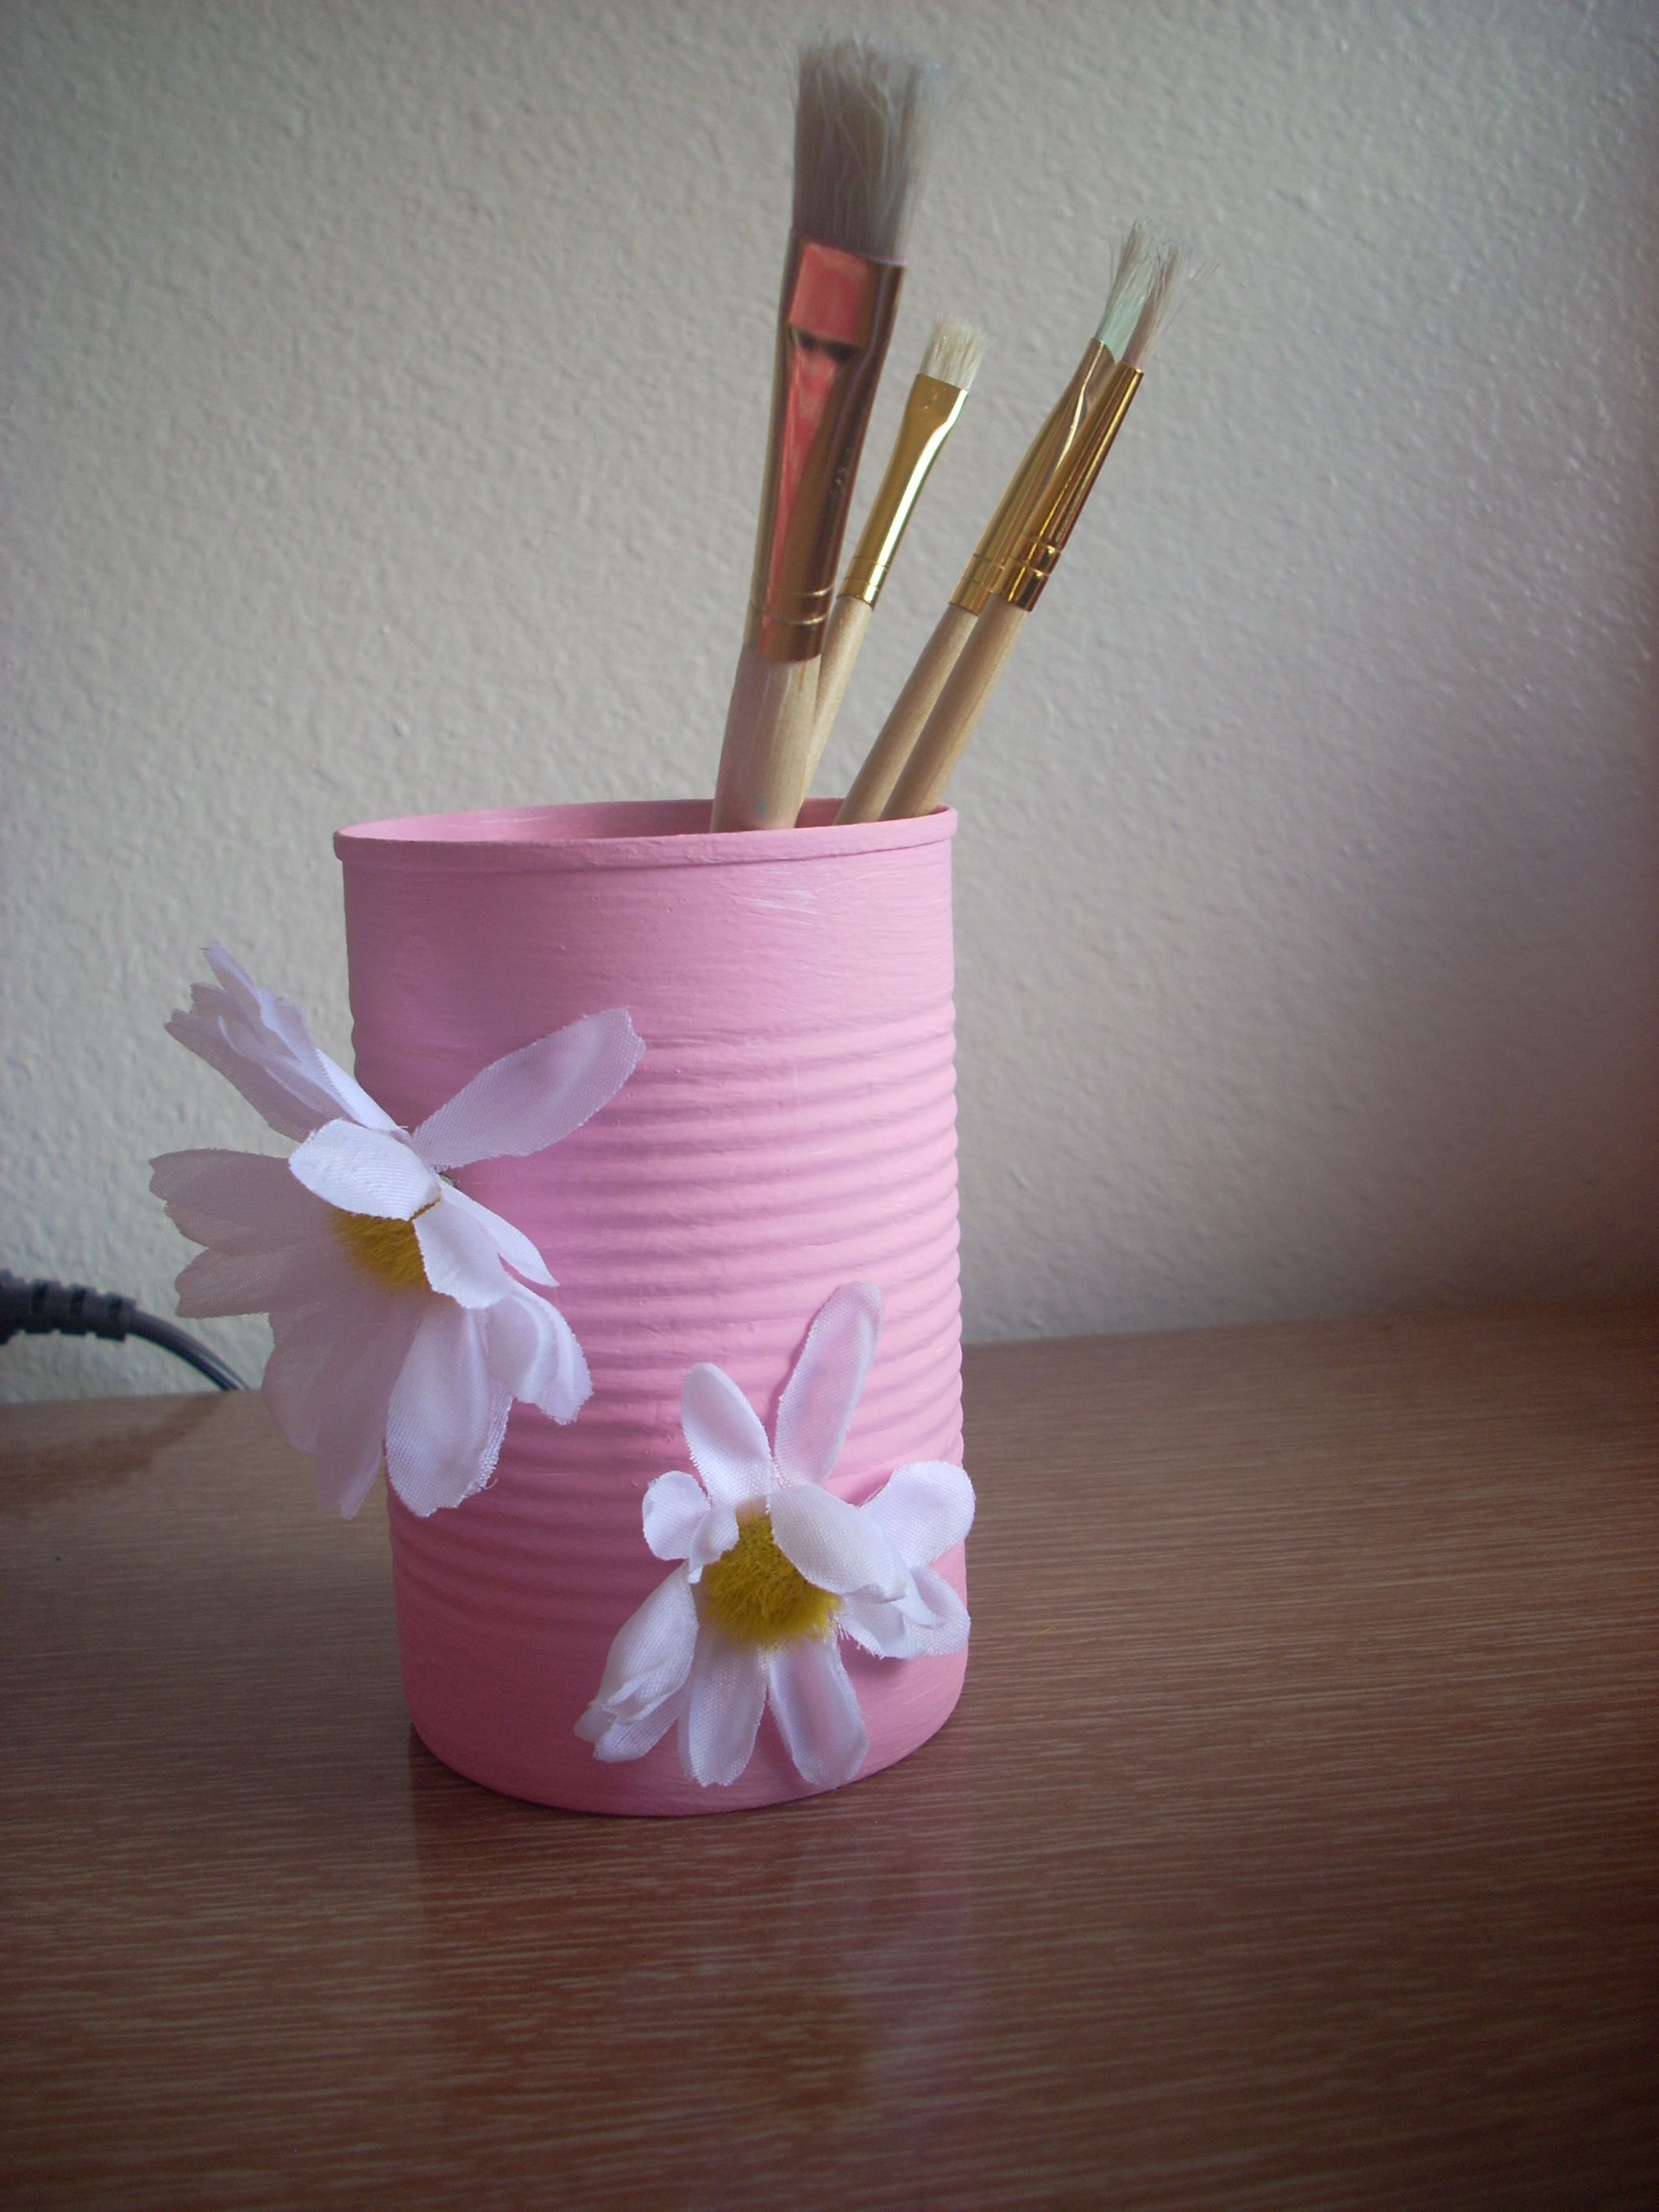 Tin Can Pencil Holder School Crafts And Arts Pinterest